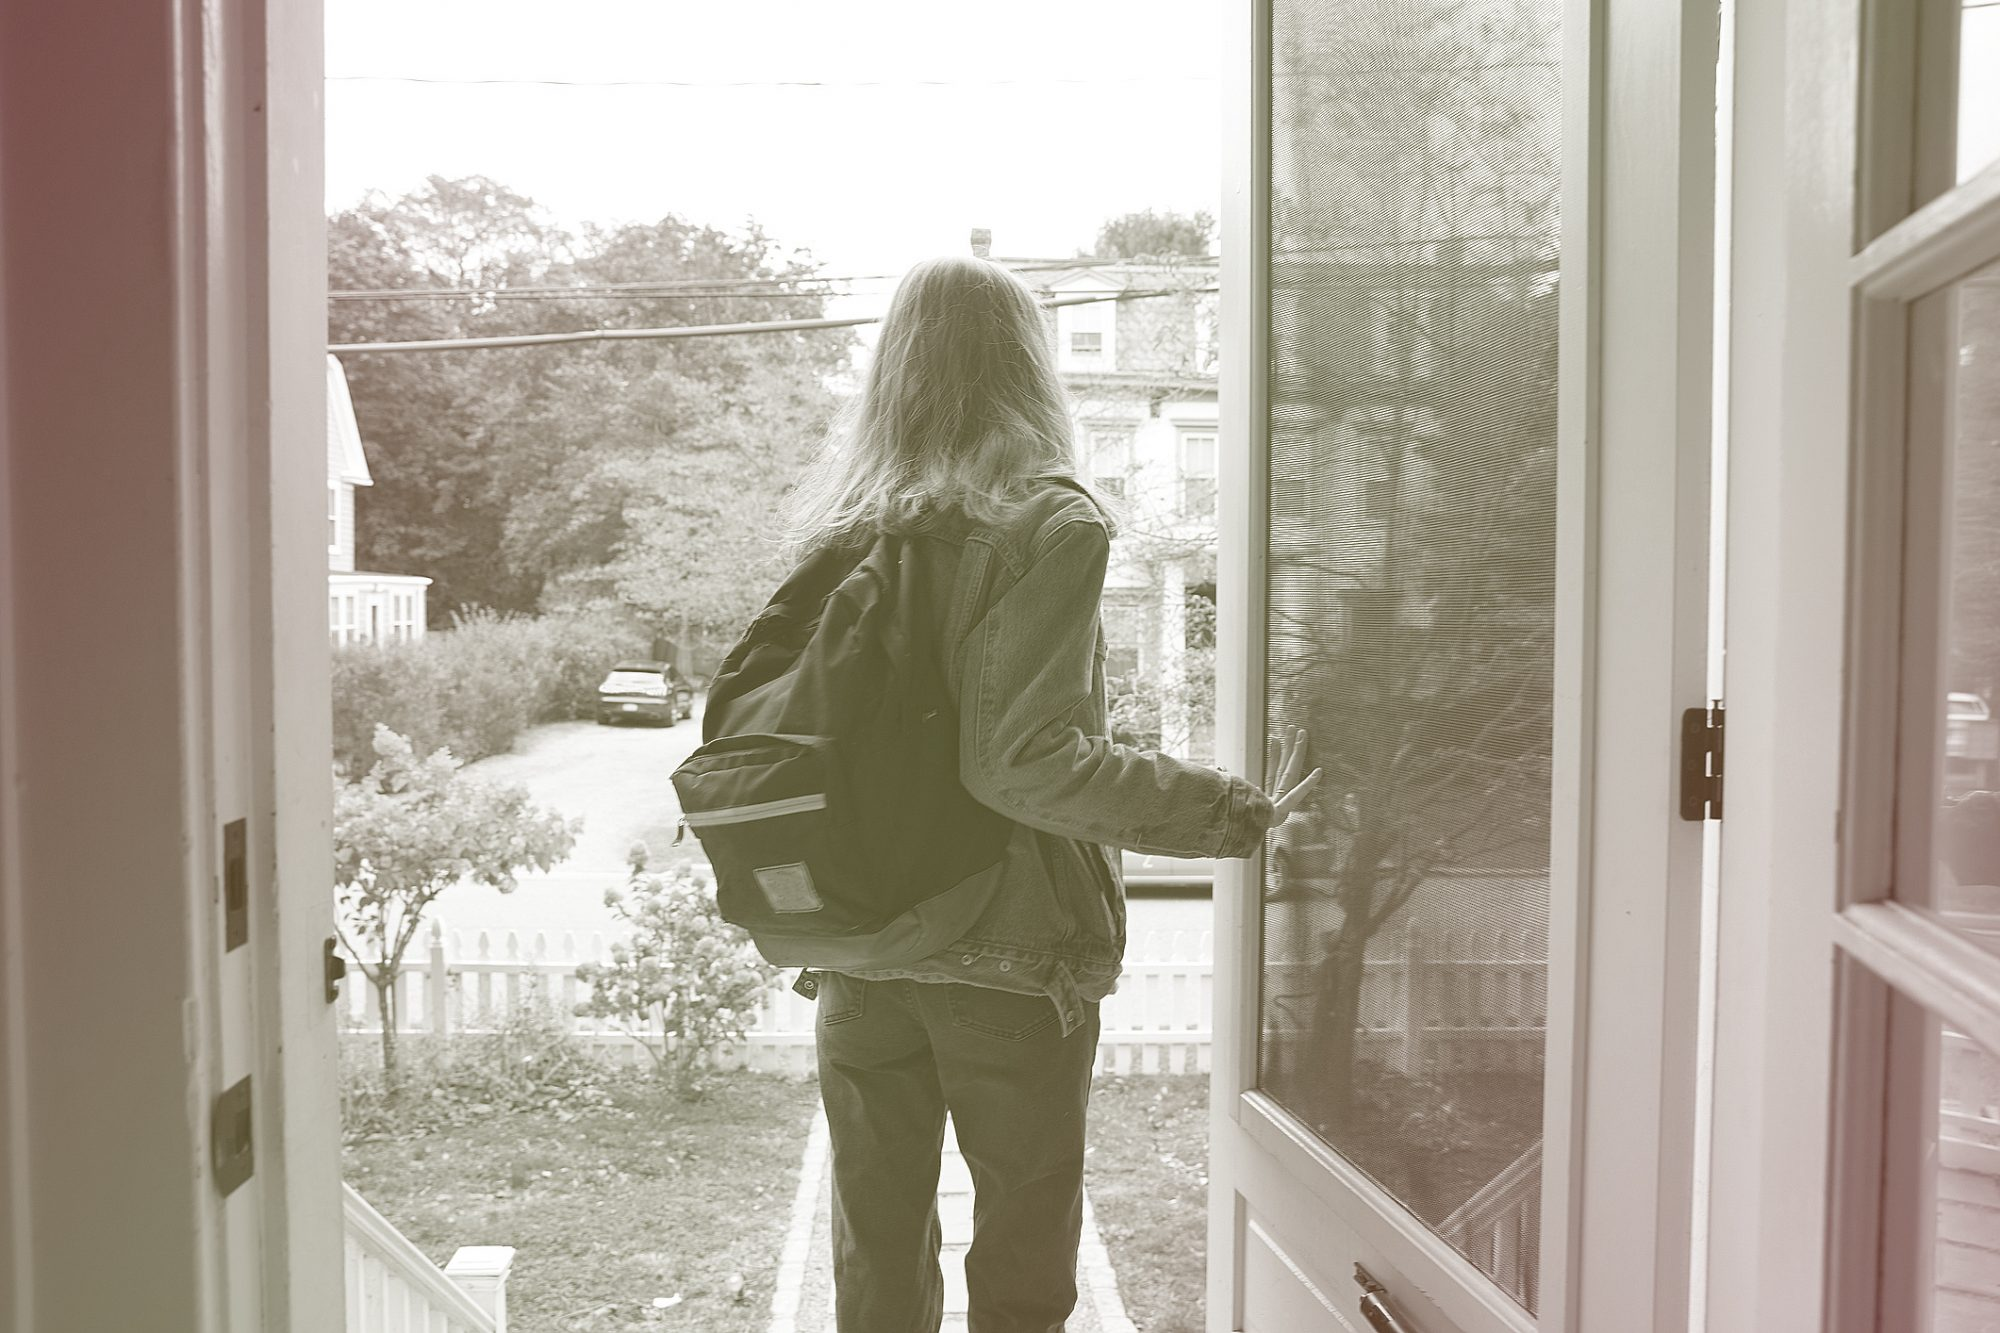 Back view of teenage girl walking out the front door of her house